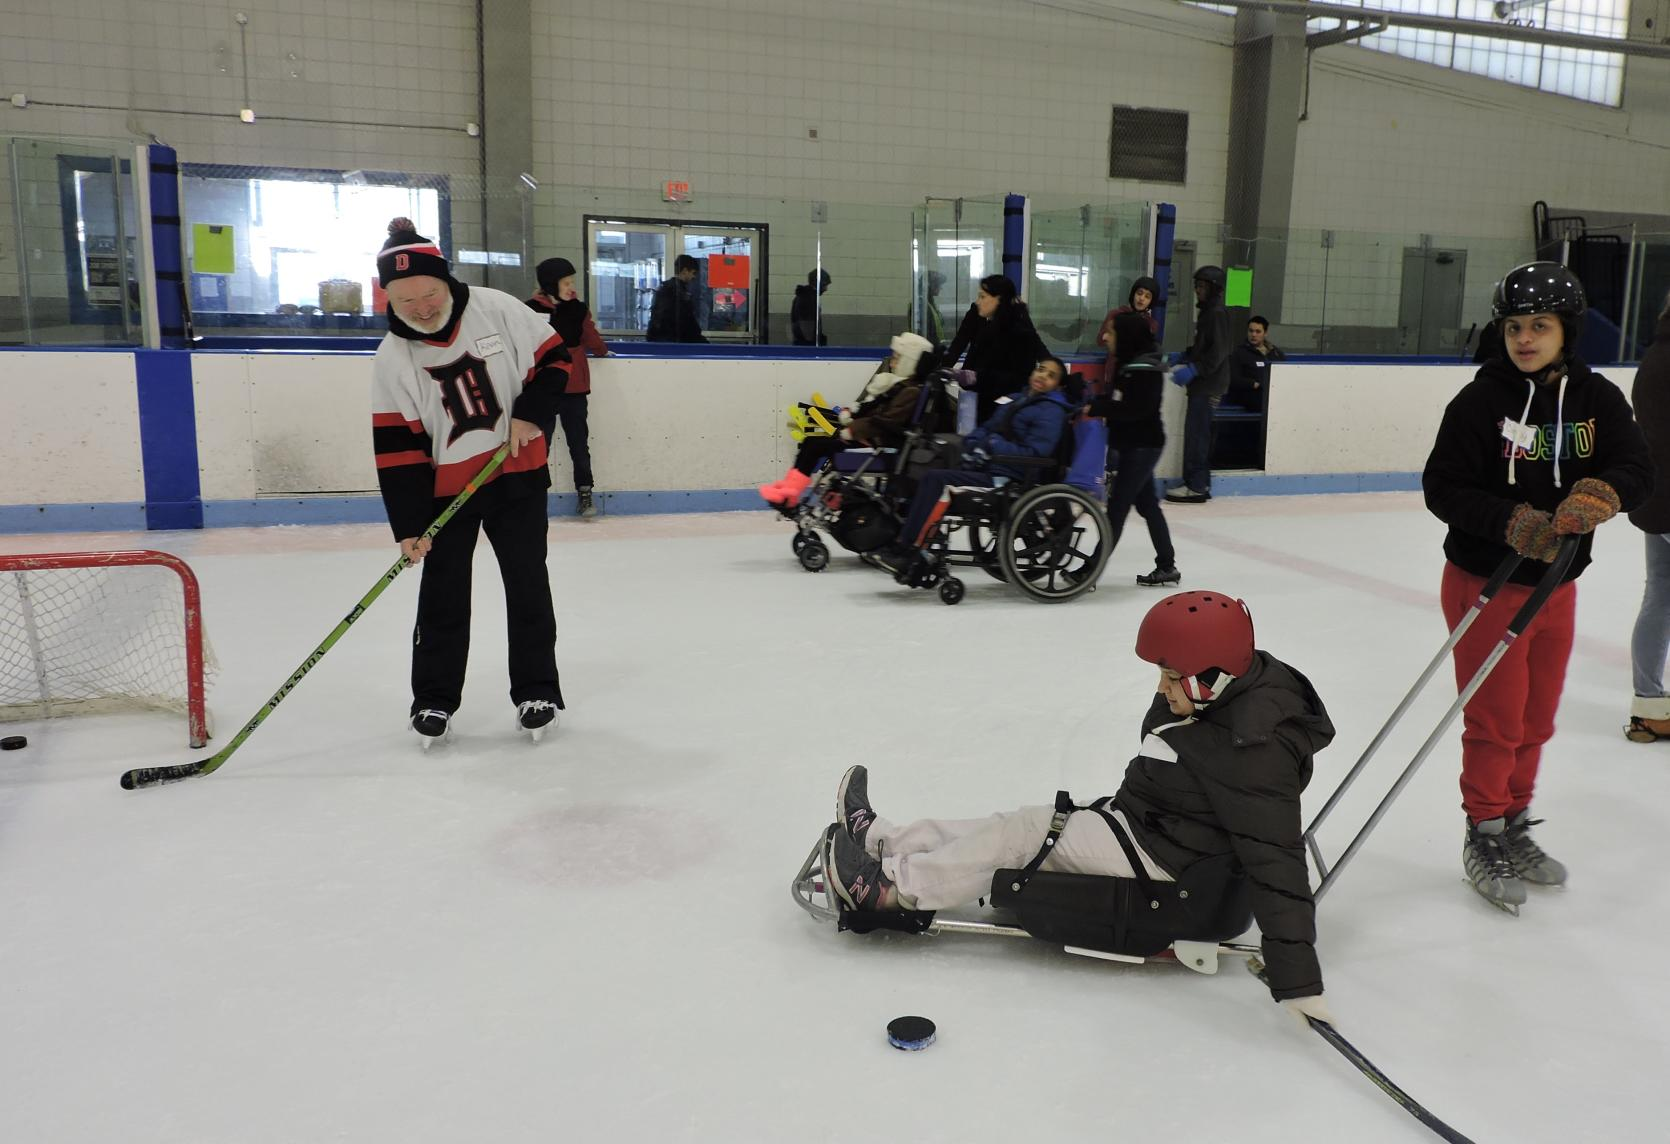 A skater in an ice sled is setting up to shoot a hockey puck at a small hockey net. Another skater is holding onto the handle of the ice sled. The goalie at the net has a stick out to catch the puck. In the background, two skaters in manual wheelchairs are being pushed across the ice.